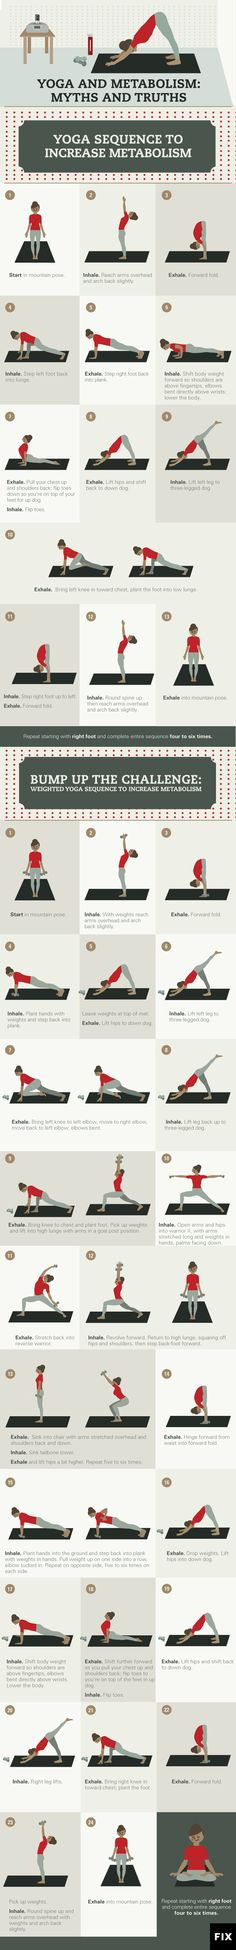 Find out which yoga poses will boost your metabolism throughout the day! #Yoga http://www.fix.com/blog/yoga-and-metabolism/ | Come to Clarkston Hot Yoga in Clarkston, MI for all of your Yoga and fitness needs! Feel free to call (248) 620-7101 or visit our website www.clarkstonhotyoga.com for more information about the classes we offer!